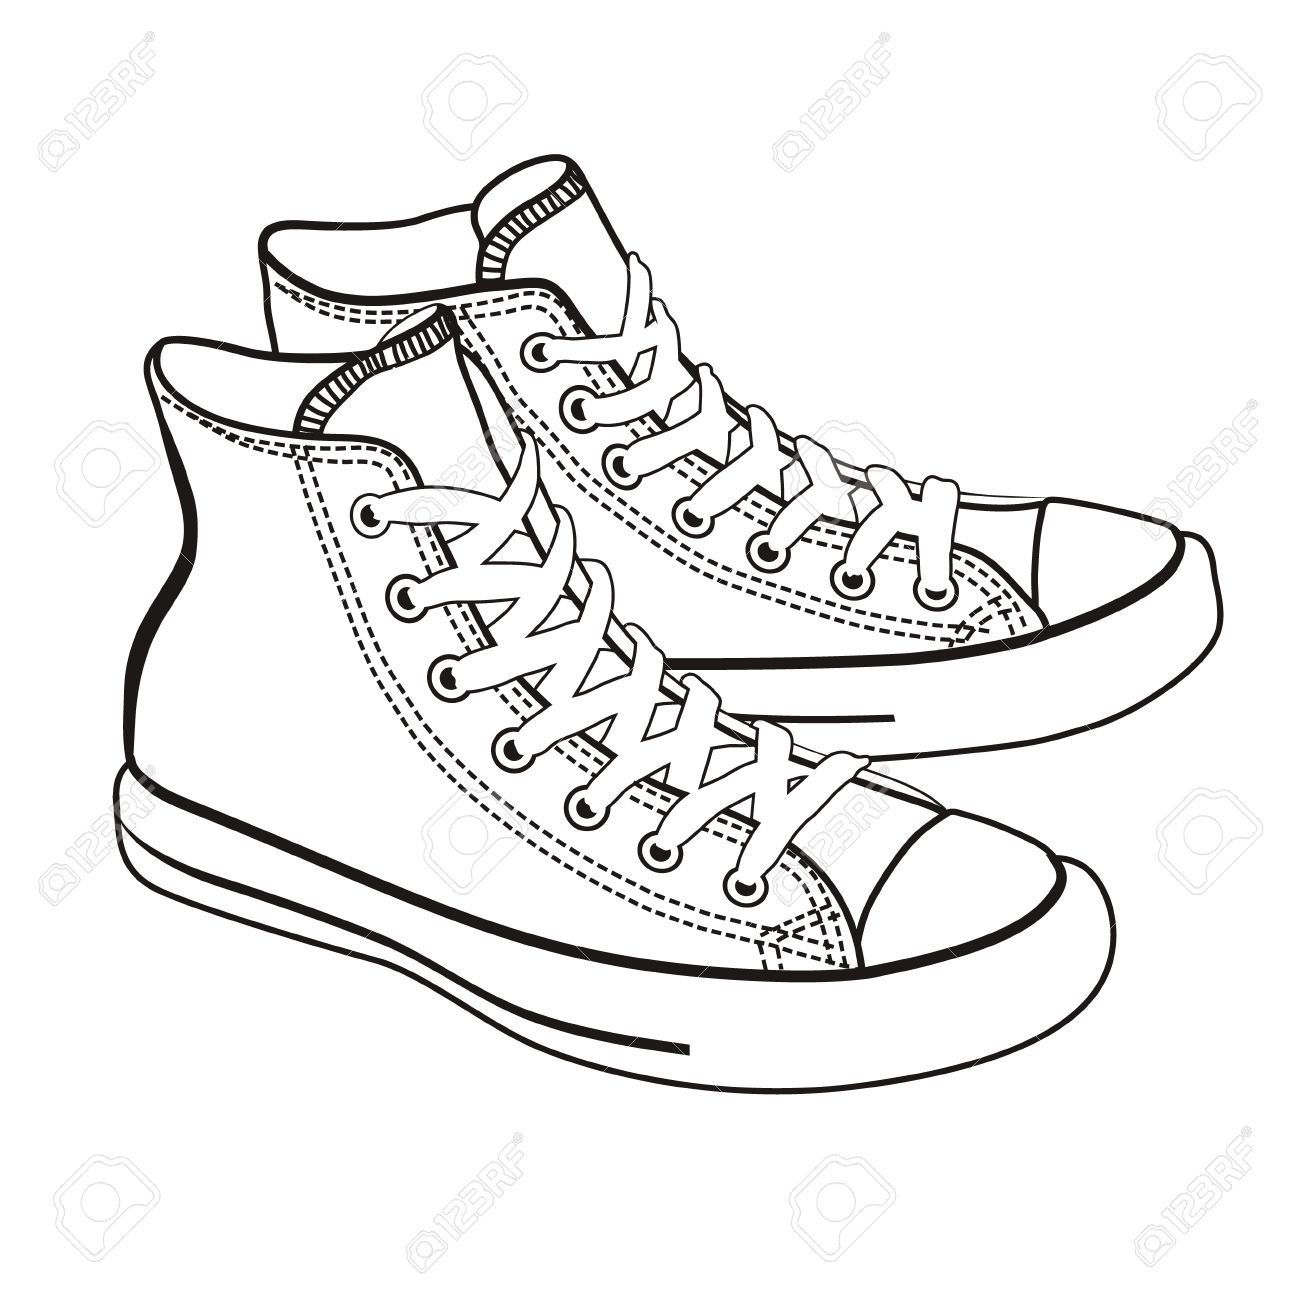 Isolated Cartoon Sneakers Lineart On White Background Royalty Free Cliparts Vectors And Stock Illustration Image 50146370